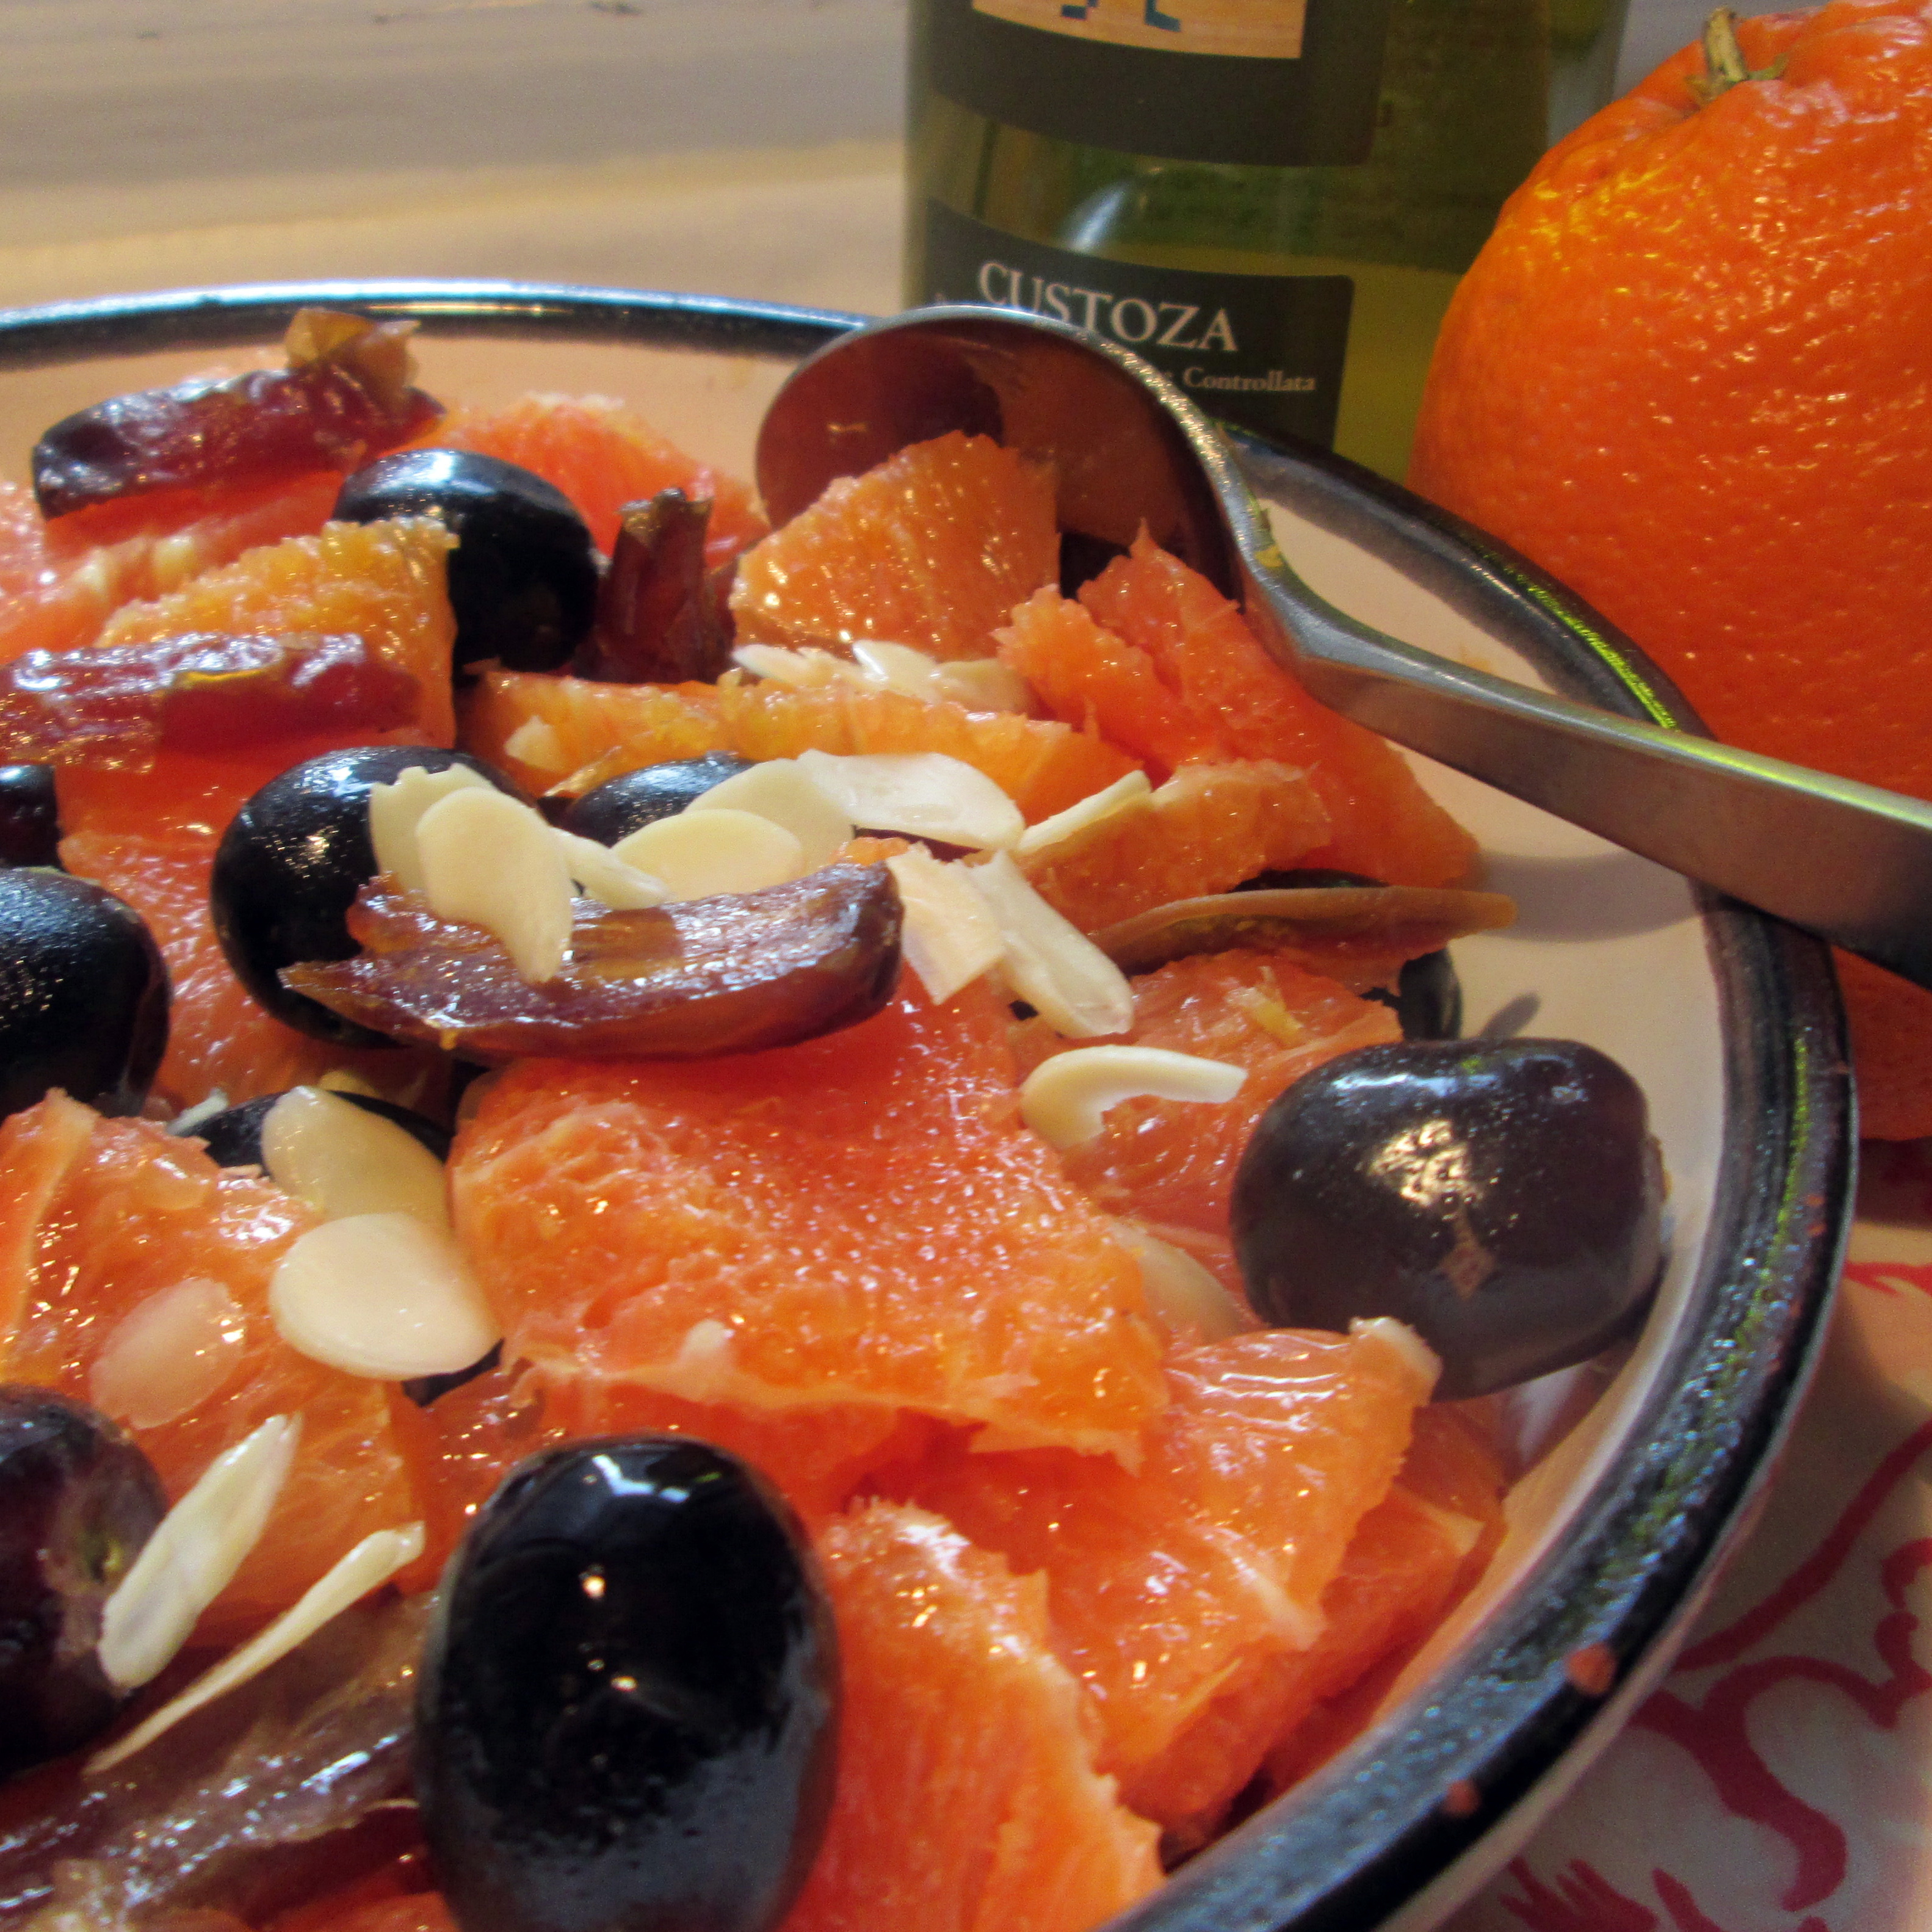 Macerated Oranges, Medjool Dates And Grapes with Slivered Almonds